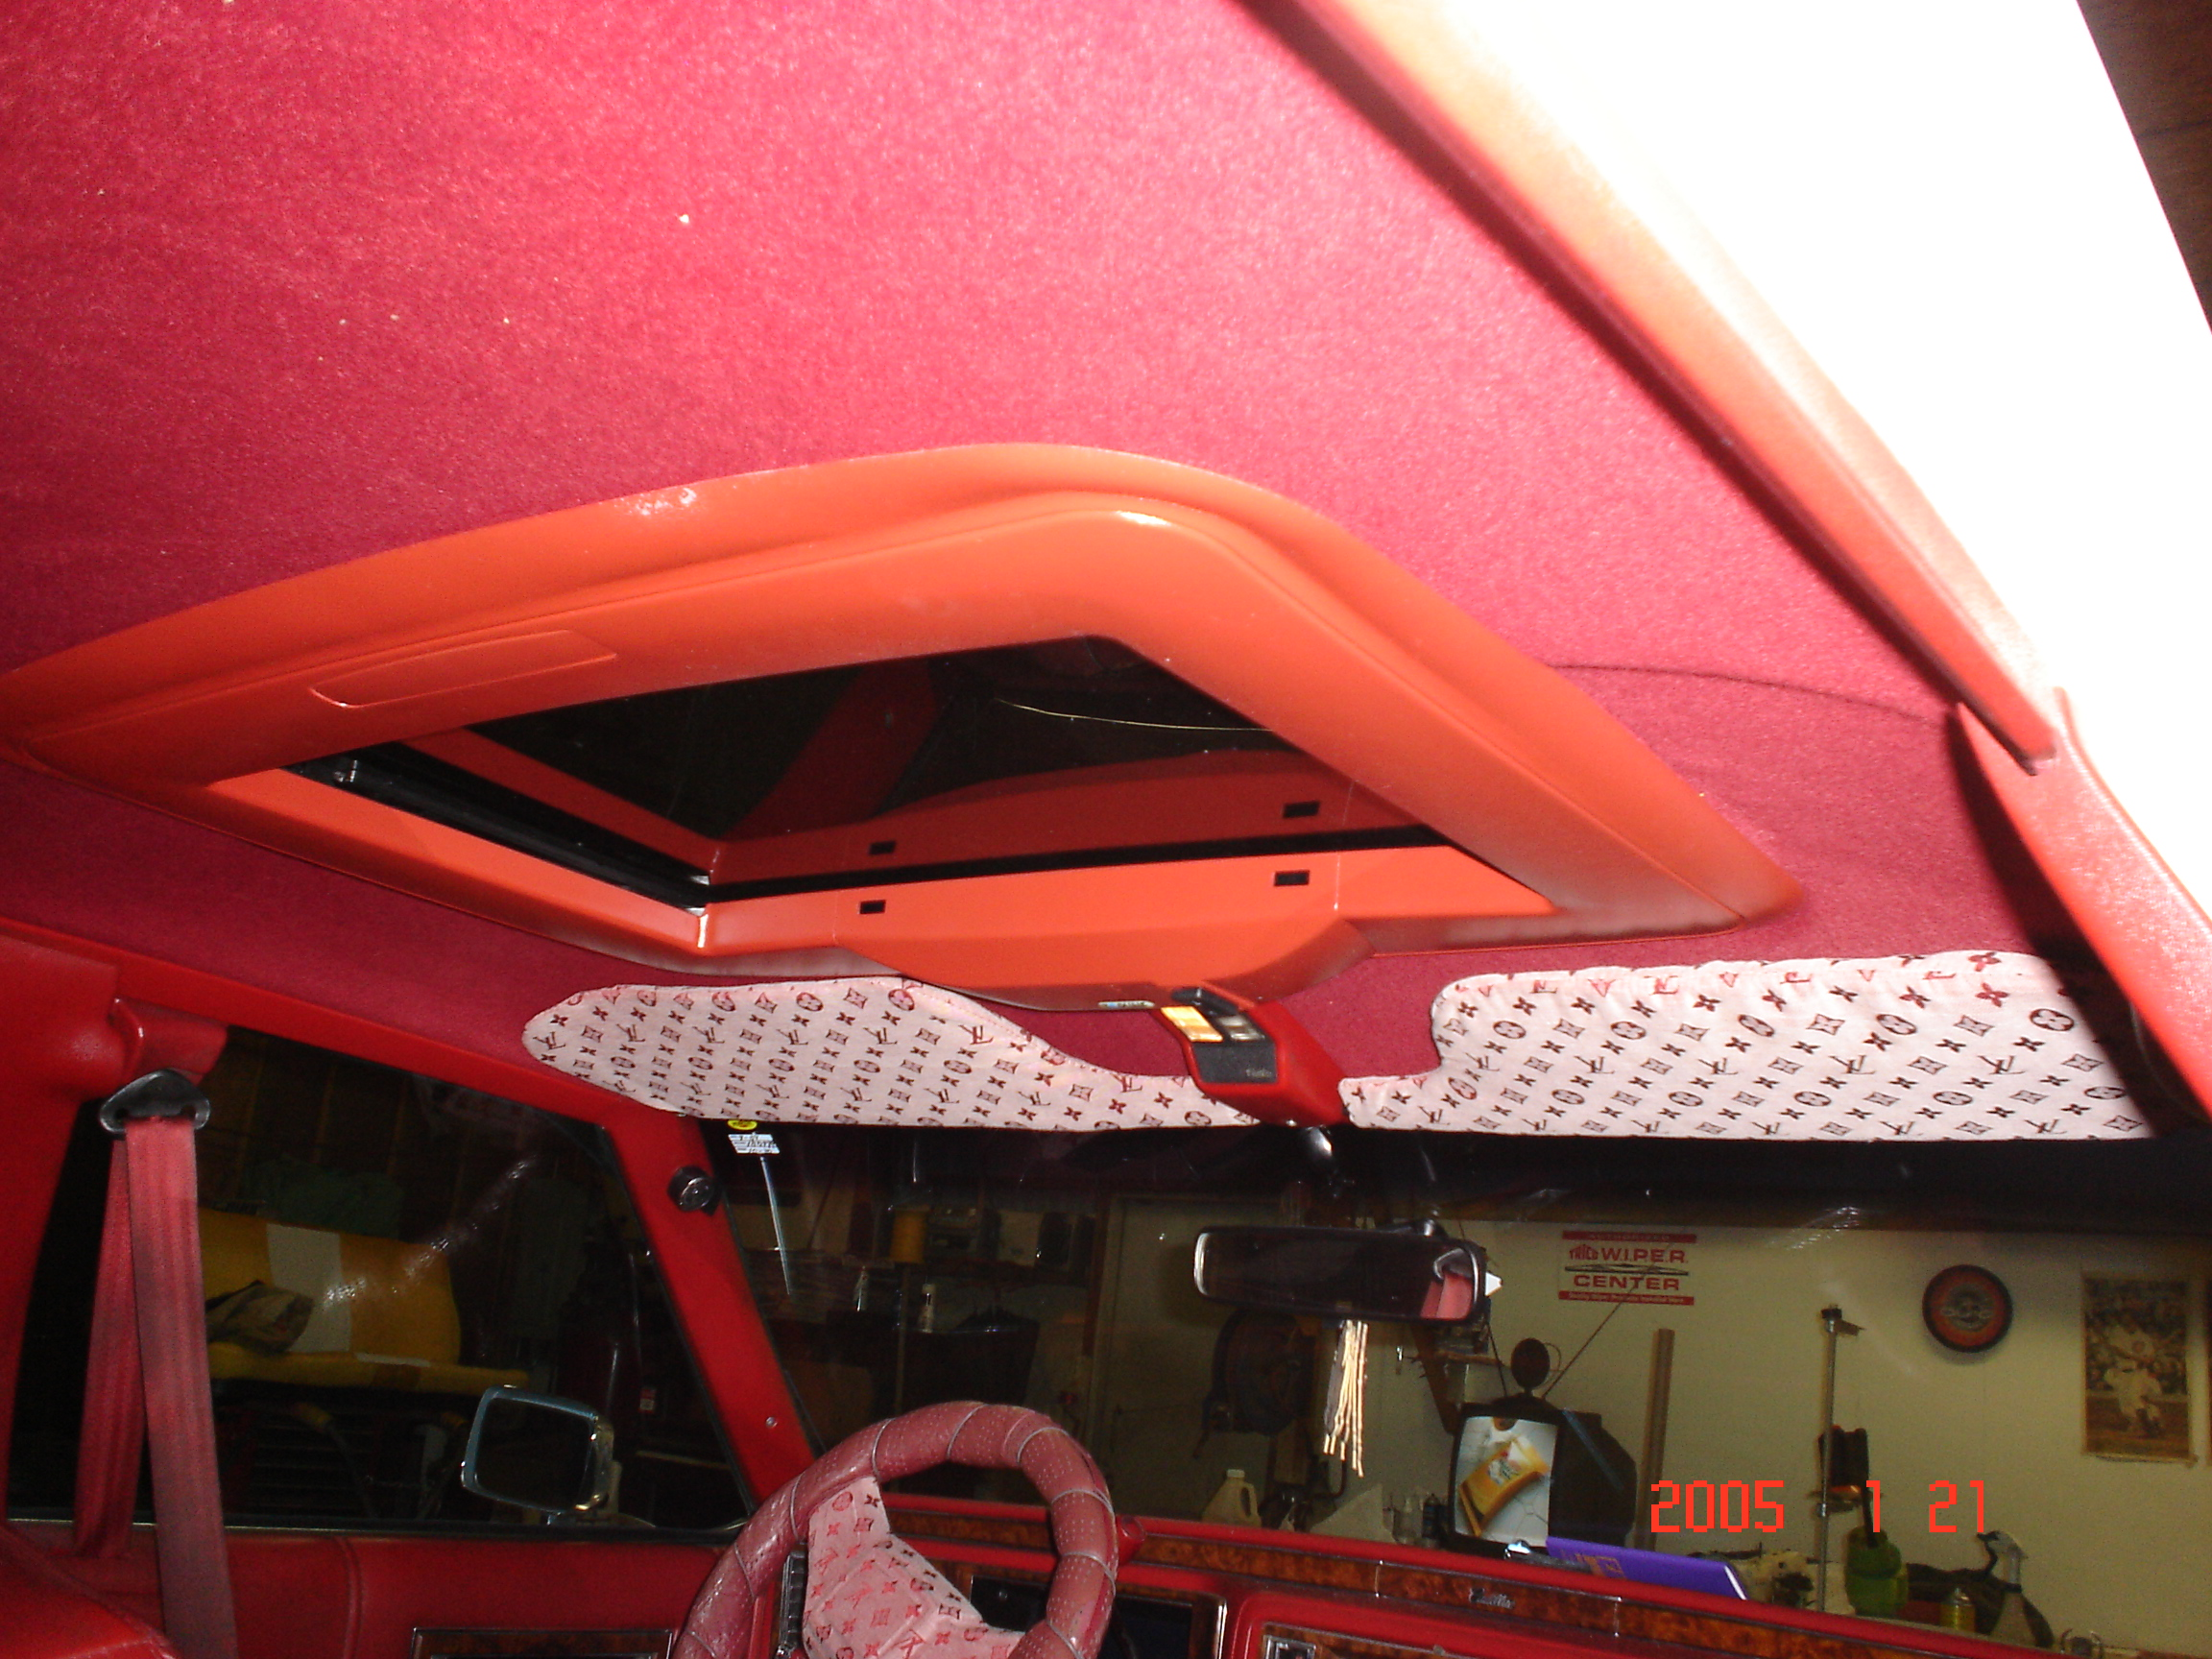 Headliner replacement with spoiler sunroof